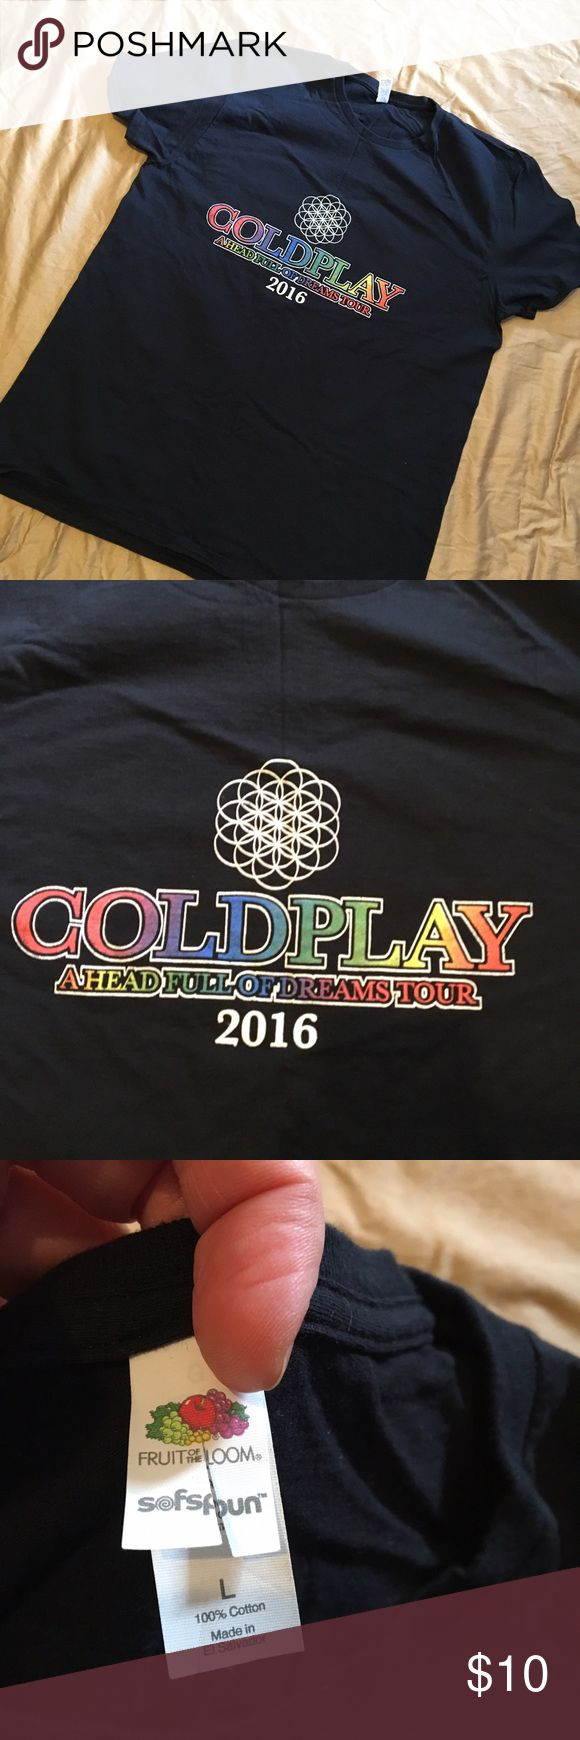 Unofficial Coldplay concert tee Tour 2016. Make an offer! 30% off bundles of two or more! Fruit of the Loom Shirts Tees - Short Sleeve